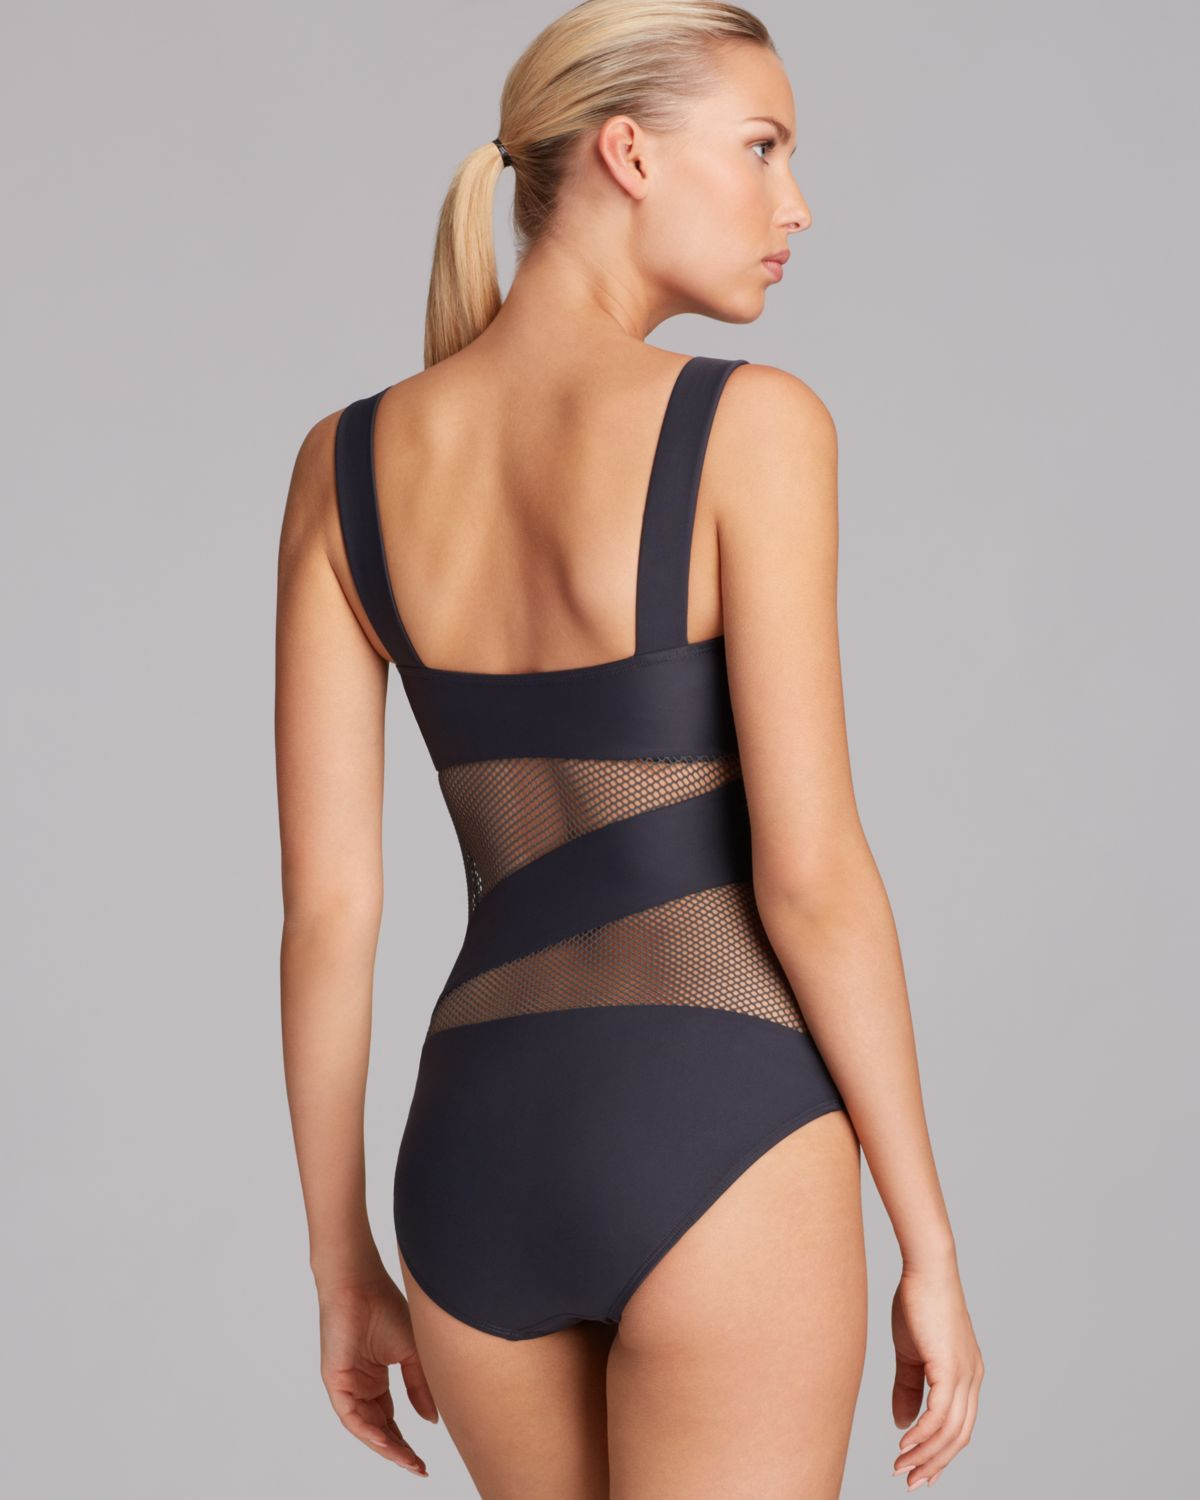 e9cef01aa86af DKNY Solid Mesh Splice Maillot One Piece Swimsuit in Black - Lyst